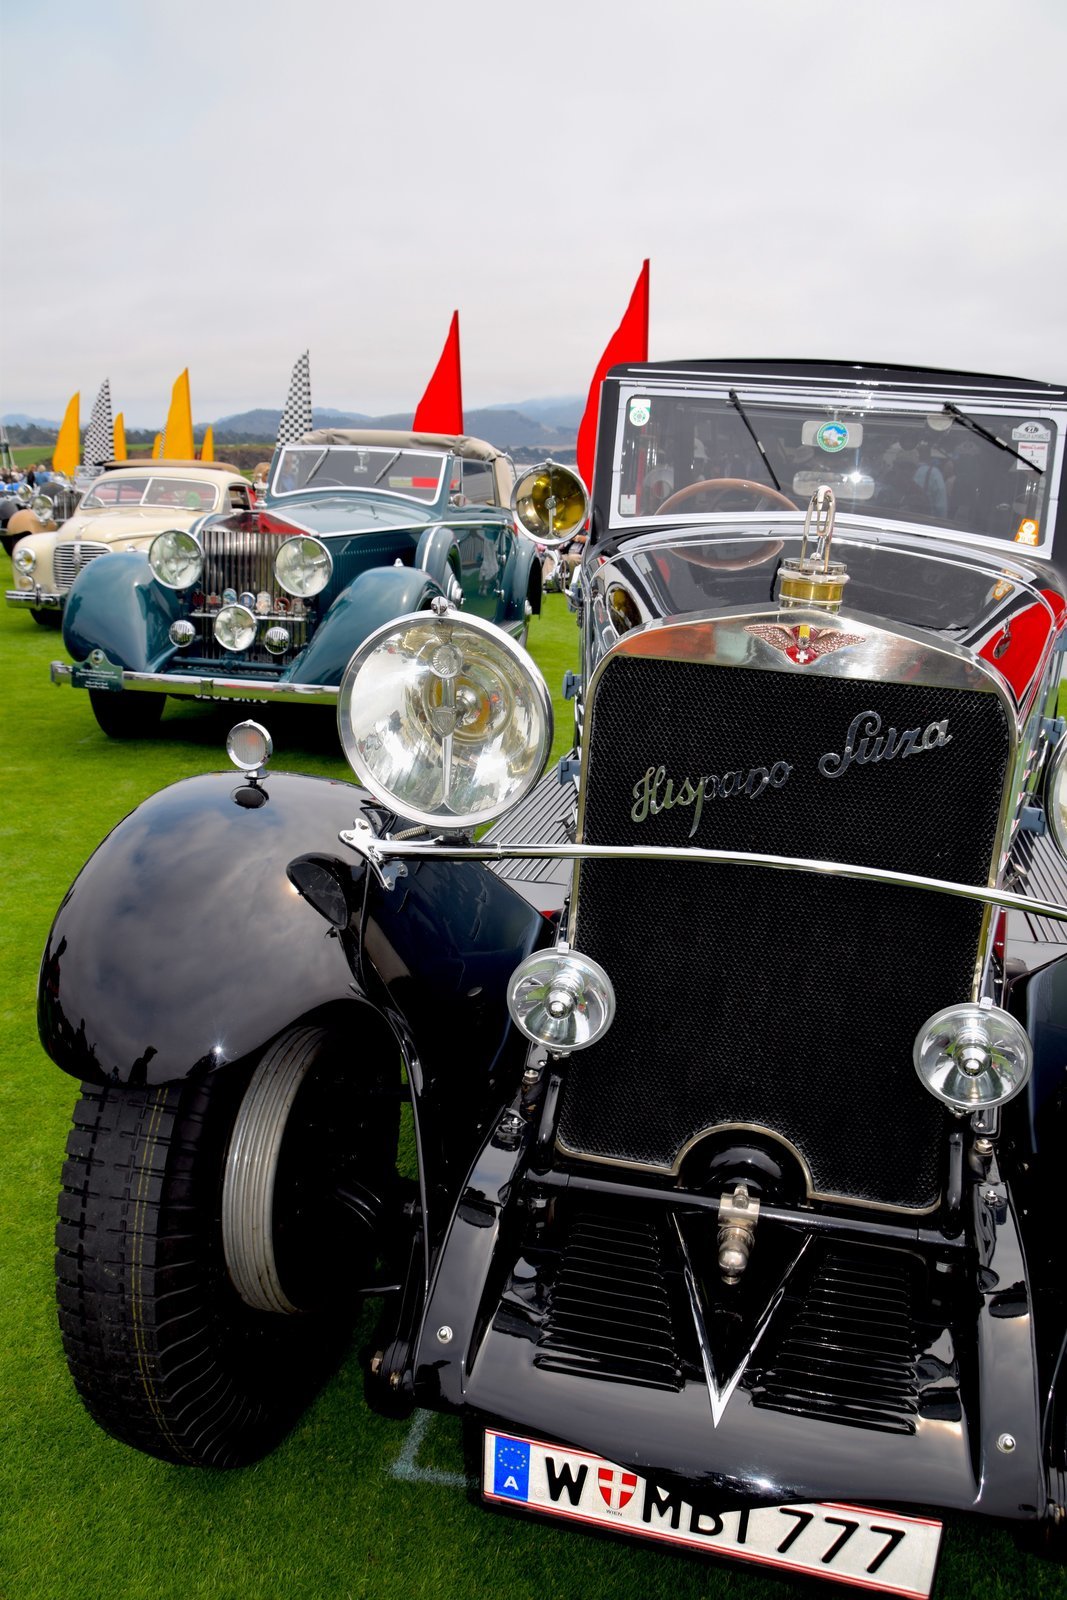 The 1926 Hispano-Suiza H6B Chapron Cabriolet was re-bodied in 1931 by Henri Chapron for the 1932 Paris Salon de l'Automobile and is thought to have been owned by the king of Tunisia. After being brought to the U.S. in the '50s by Alec Ulmann, it was sold to Joe Weider in NY, who owned it for 40 years.